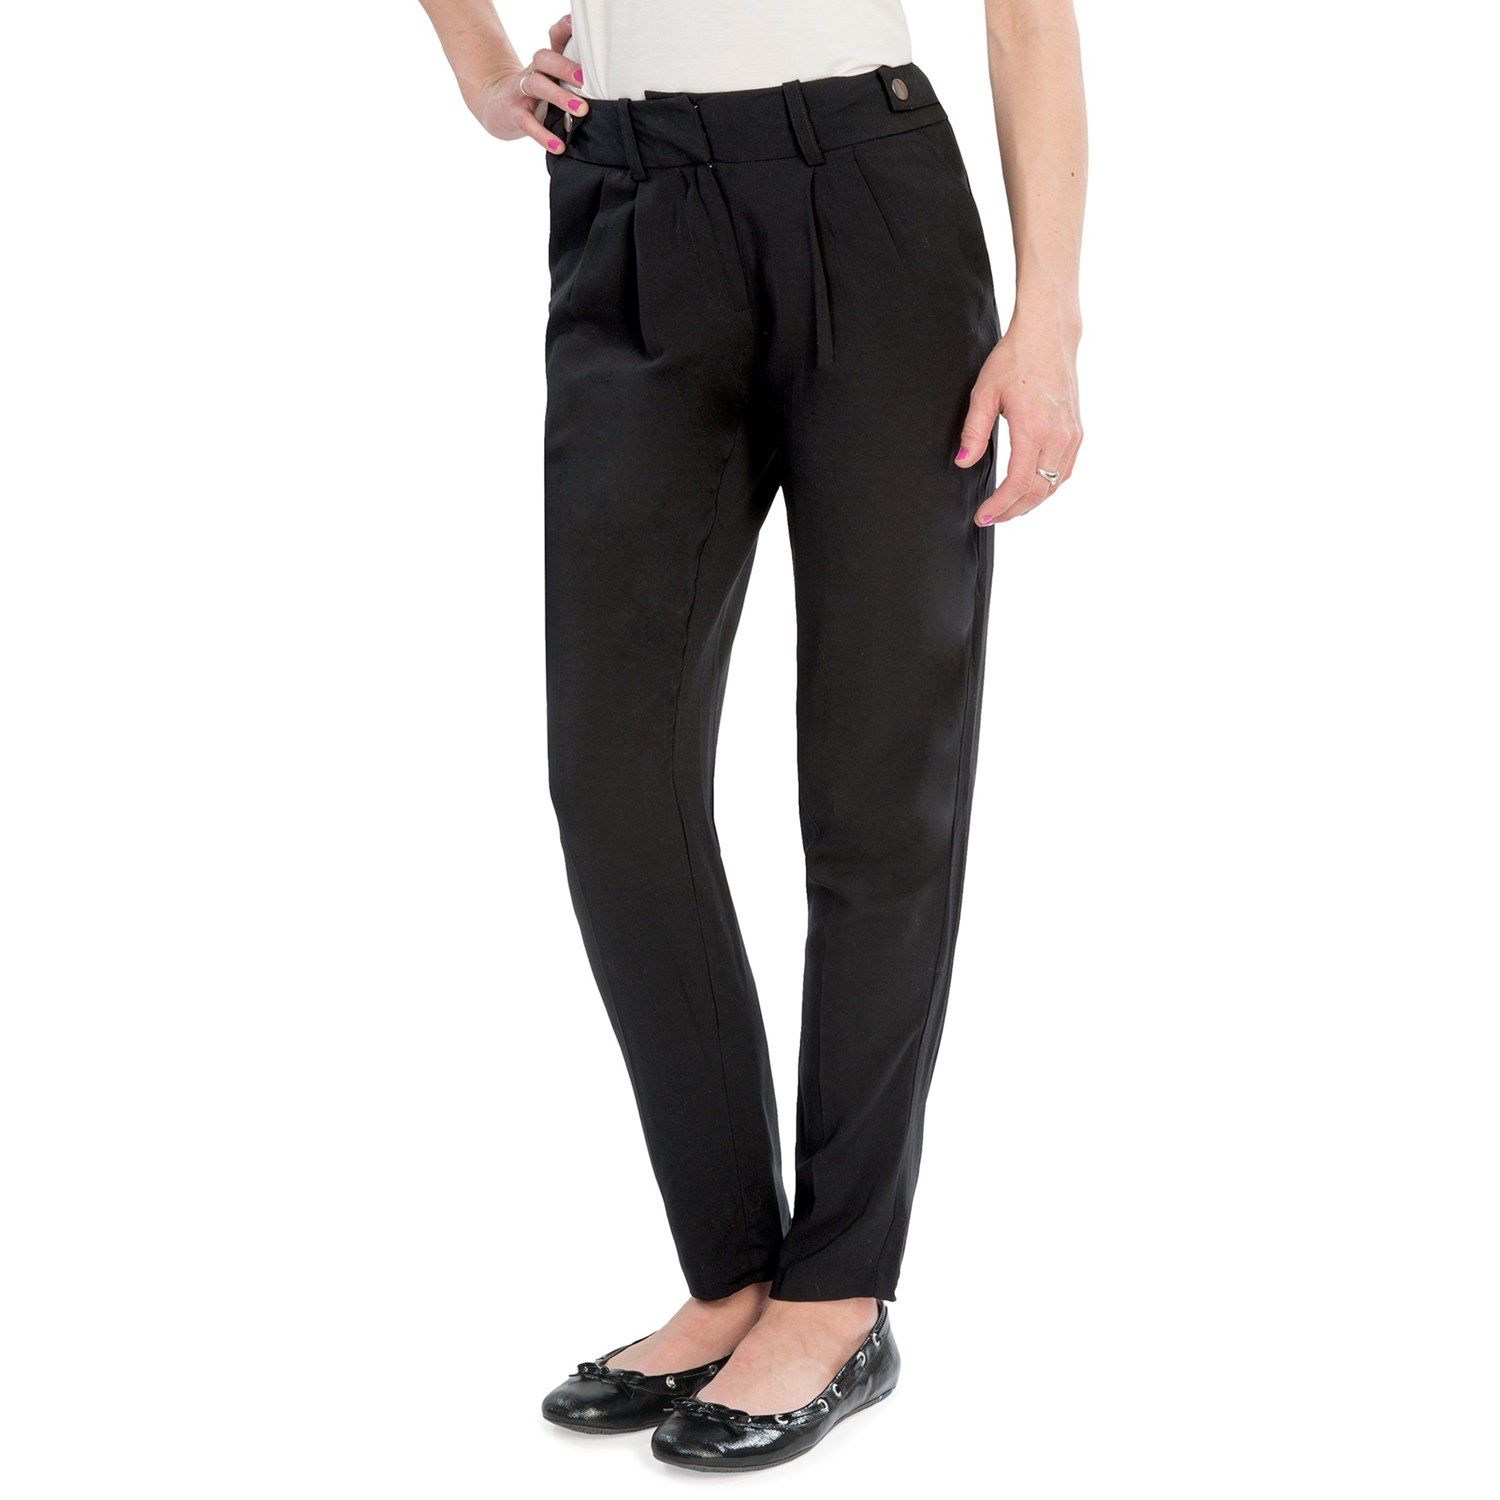 dress-pants-for-women-2 | Dress Pants | Pinterest | Women's dress ...